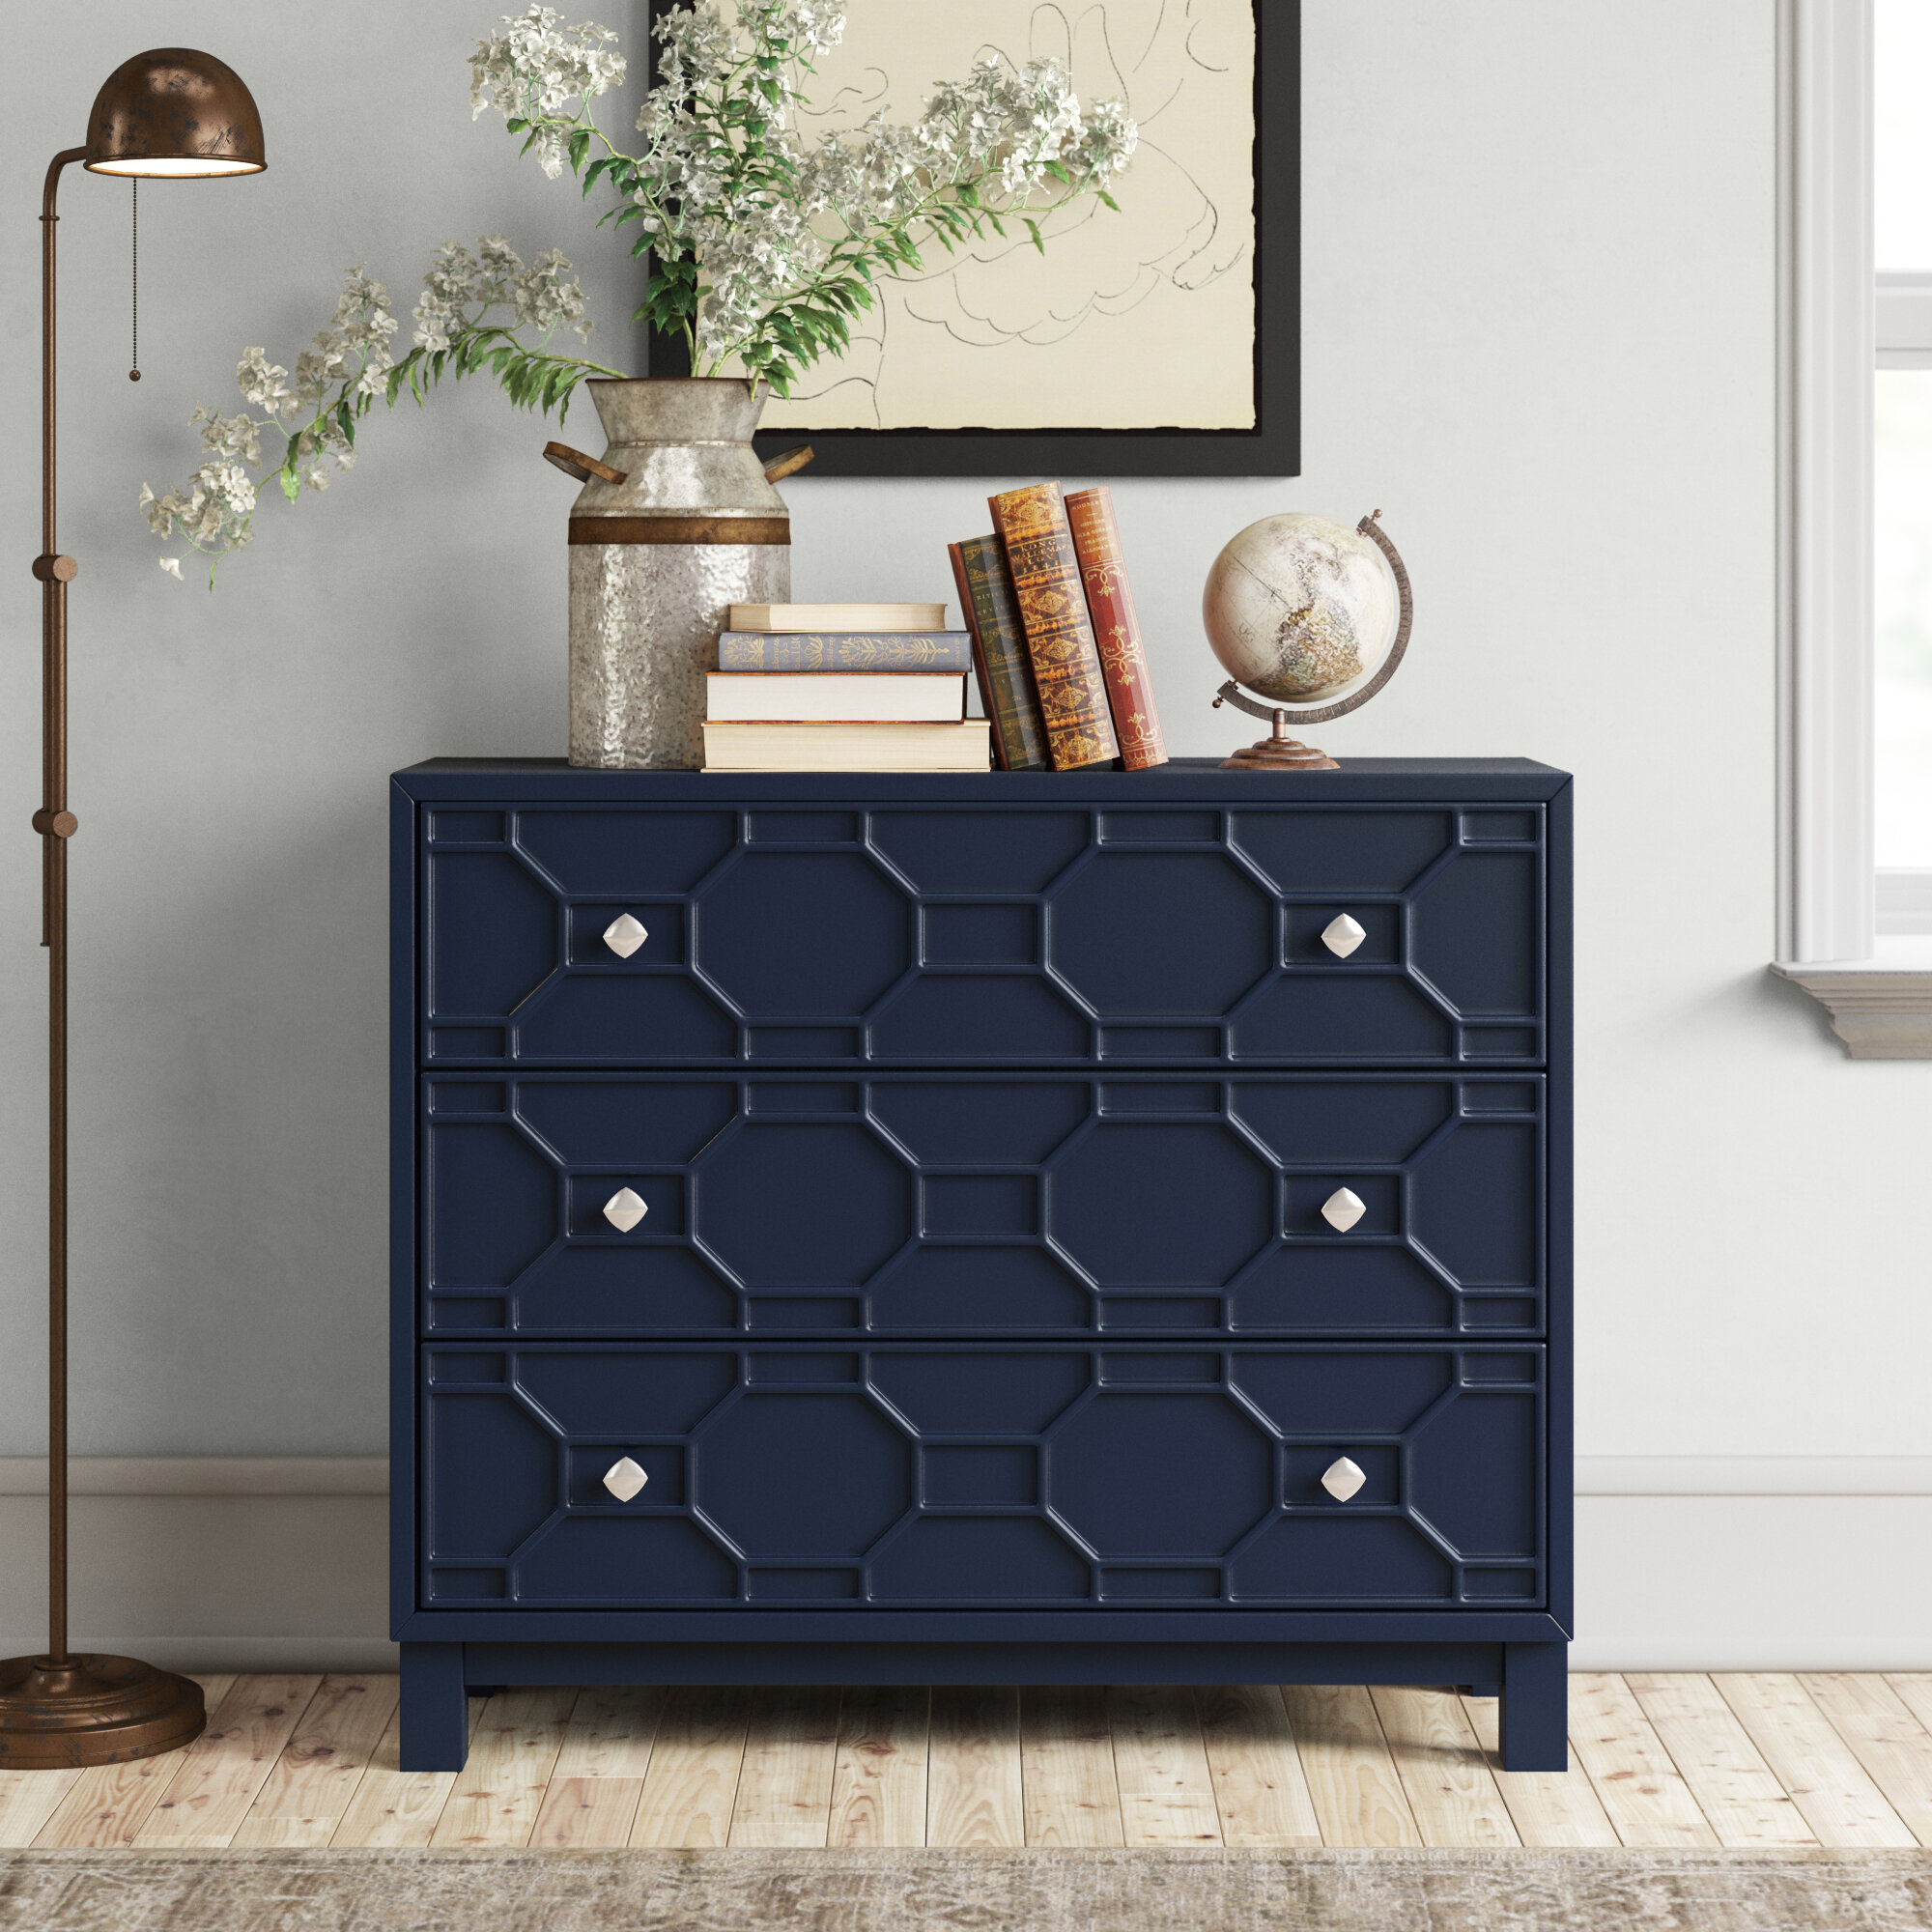 Home Delights Wicker 20 Drawers Baskets Storage Unit Wood Bedroom ...